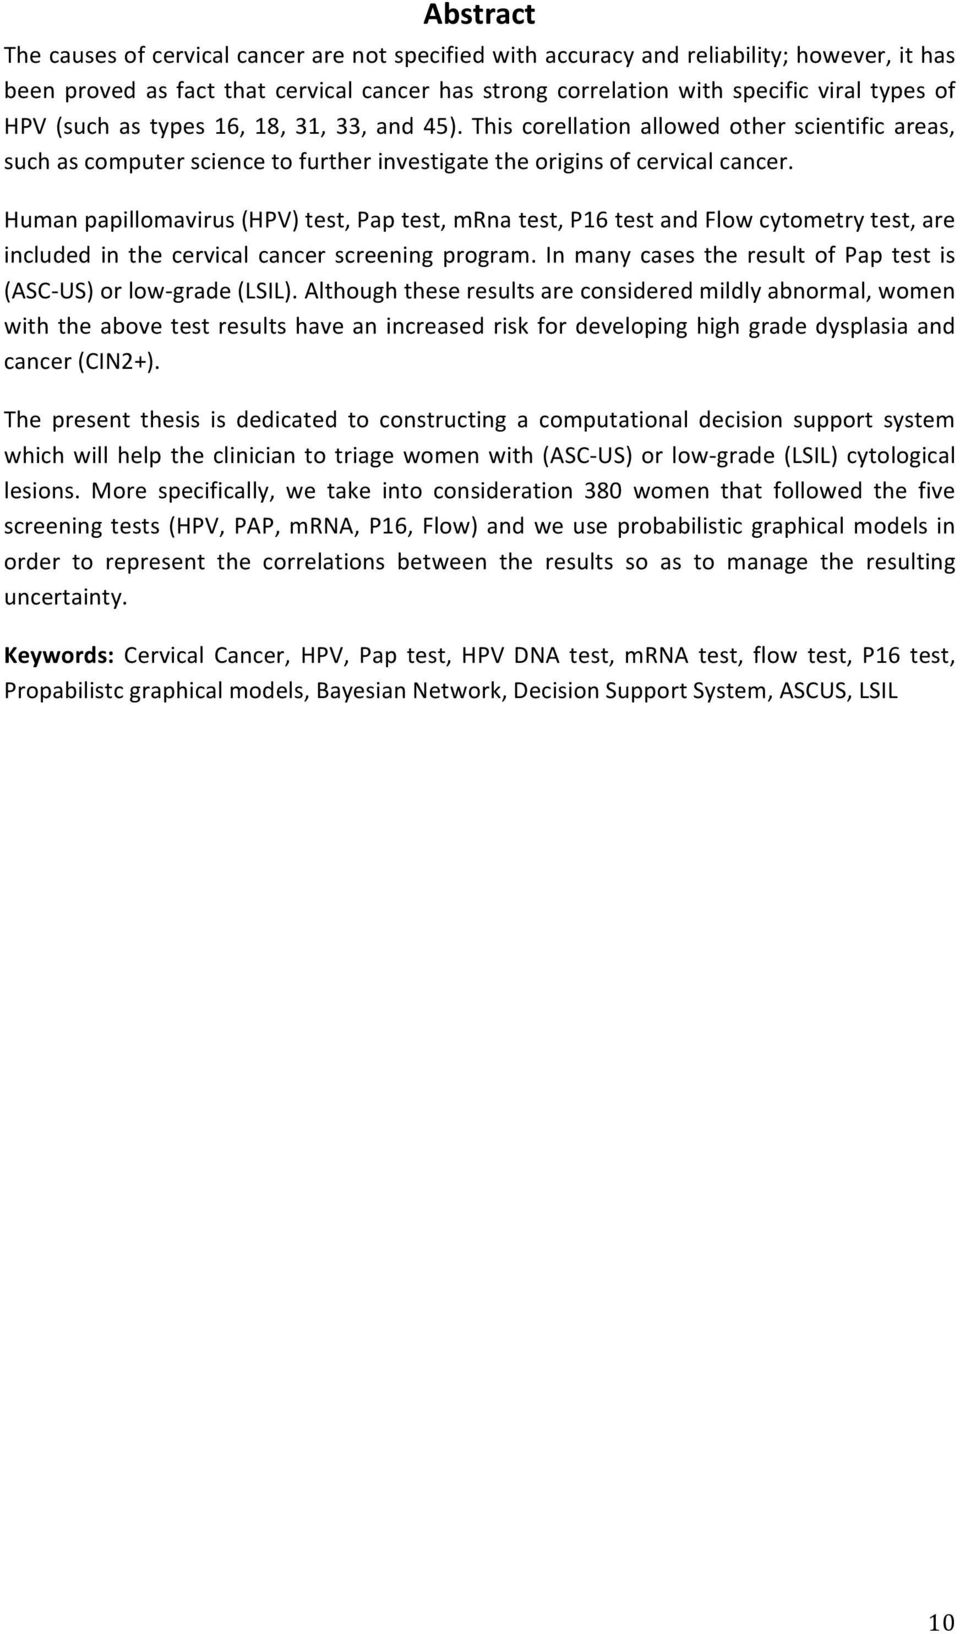 Human papillomavirus (HPV) test, Pap test, mrna test, P16 test and Flow cytometry test, are included in the cervical cancer screening program.